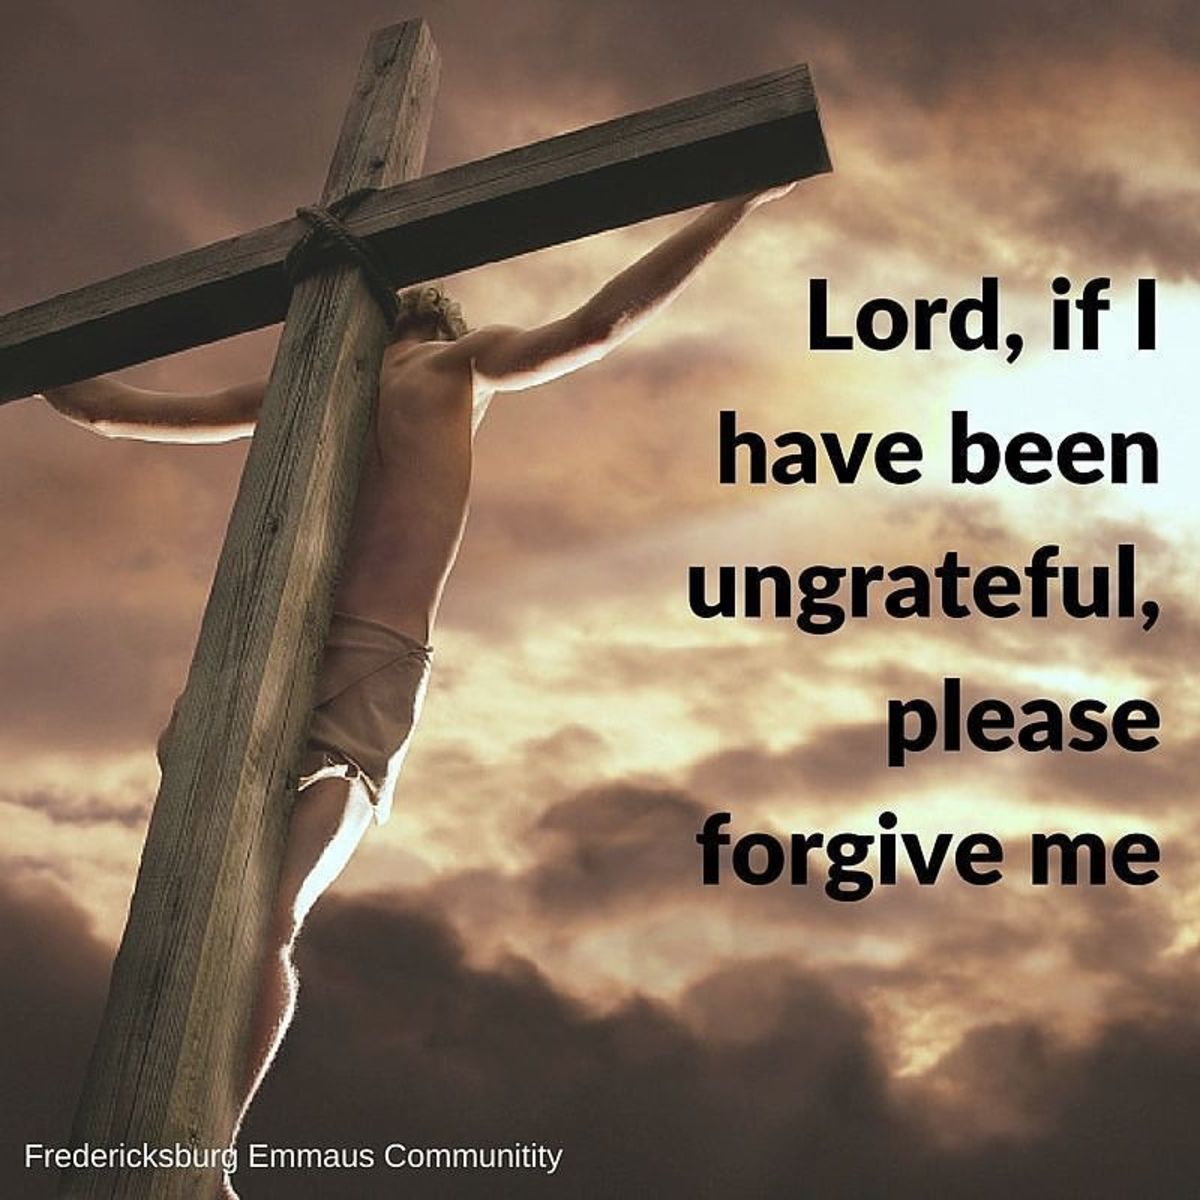 Will God forgive us of repetative sins?